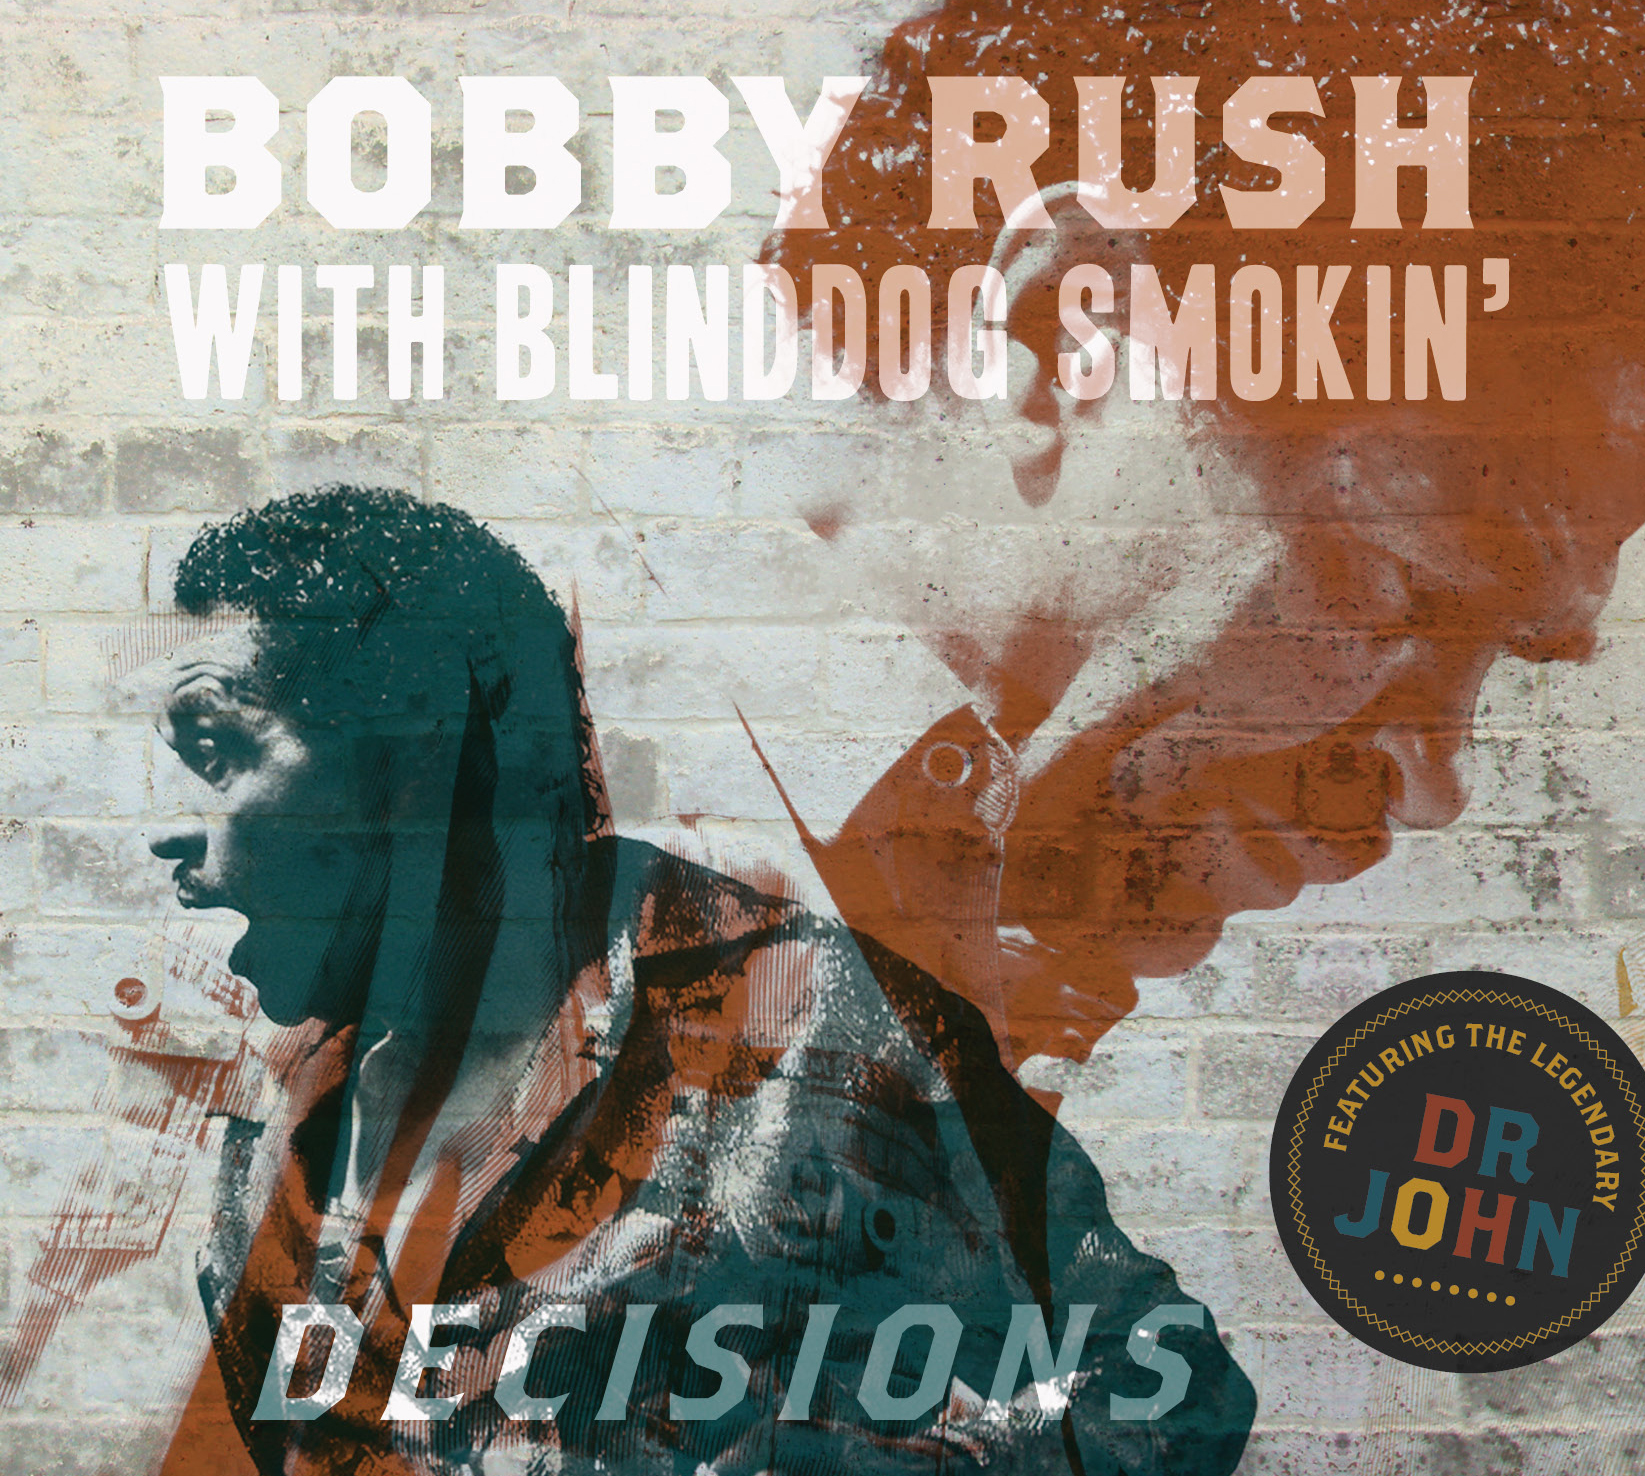 DECISIONS -2014 Grammy® Nominee (Best Blues Album)2x Blues Music Awards nominee (Best Soul Blues Album, Song Of The Year) - BOBBY RUSH WITH BLINDOG SMOKIN'SILVER TALON RECORDSApril 15th, 2014